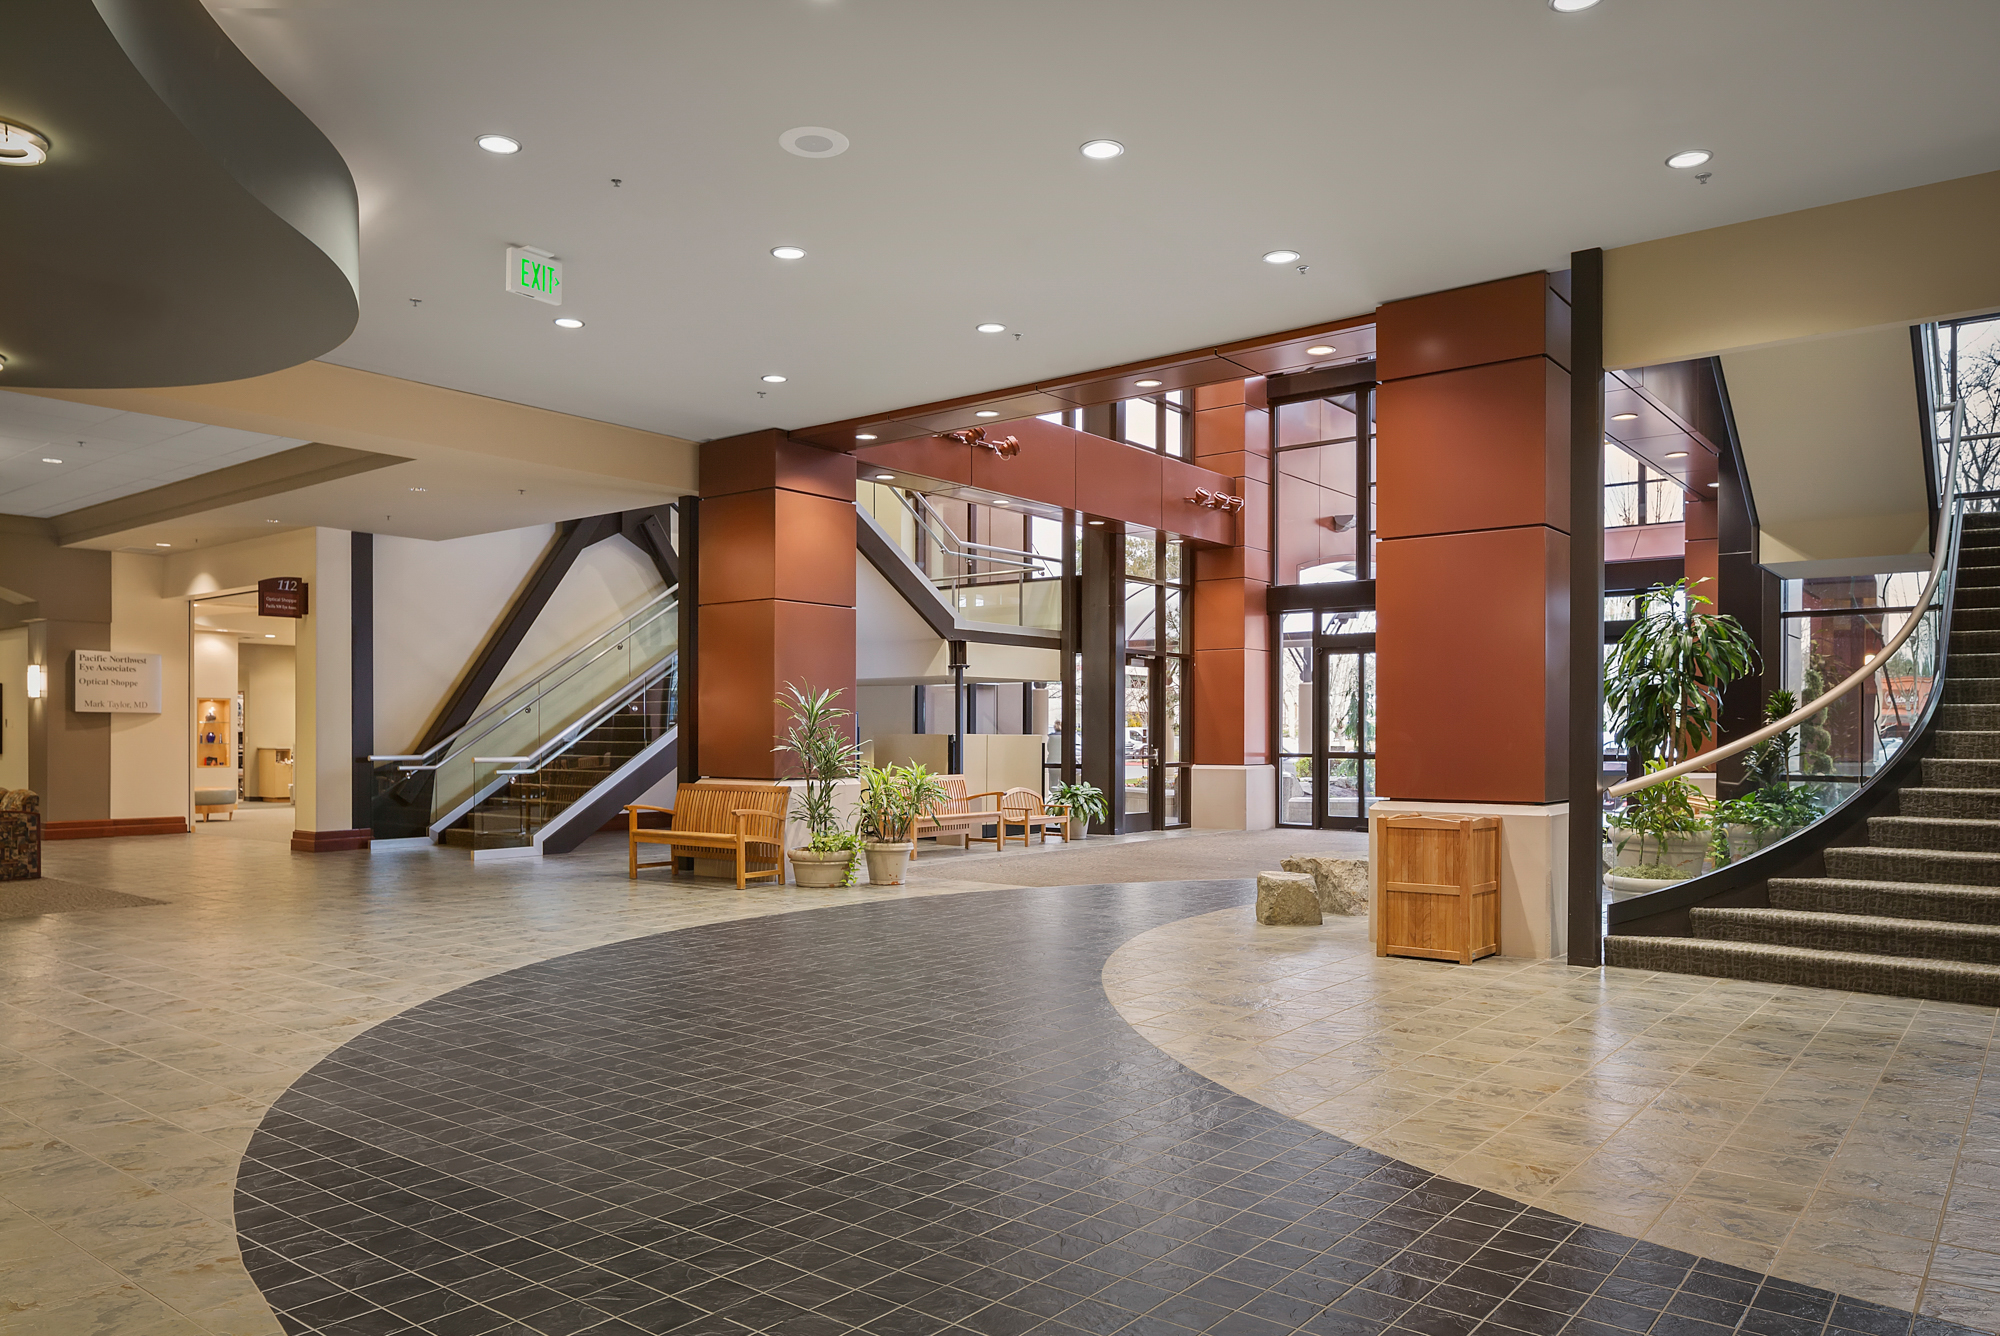 4700 Point Fosdick  •   Gig Harbor  •   2019   •   Commercial